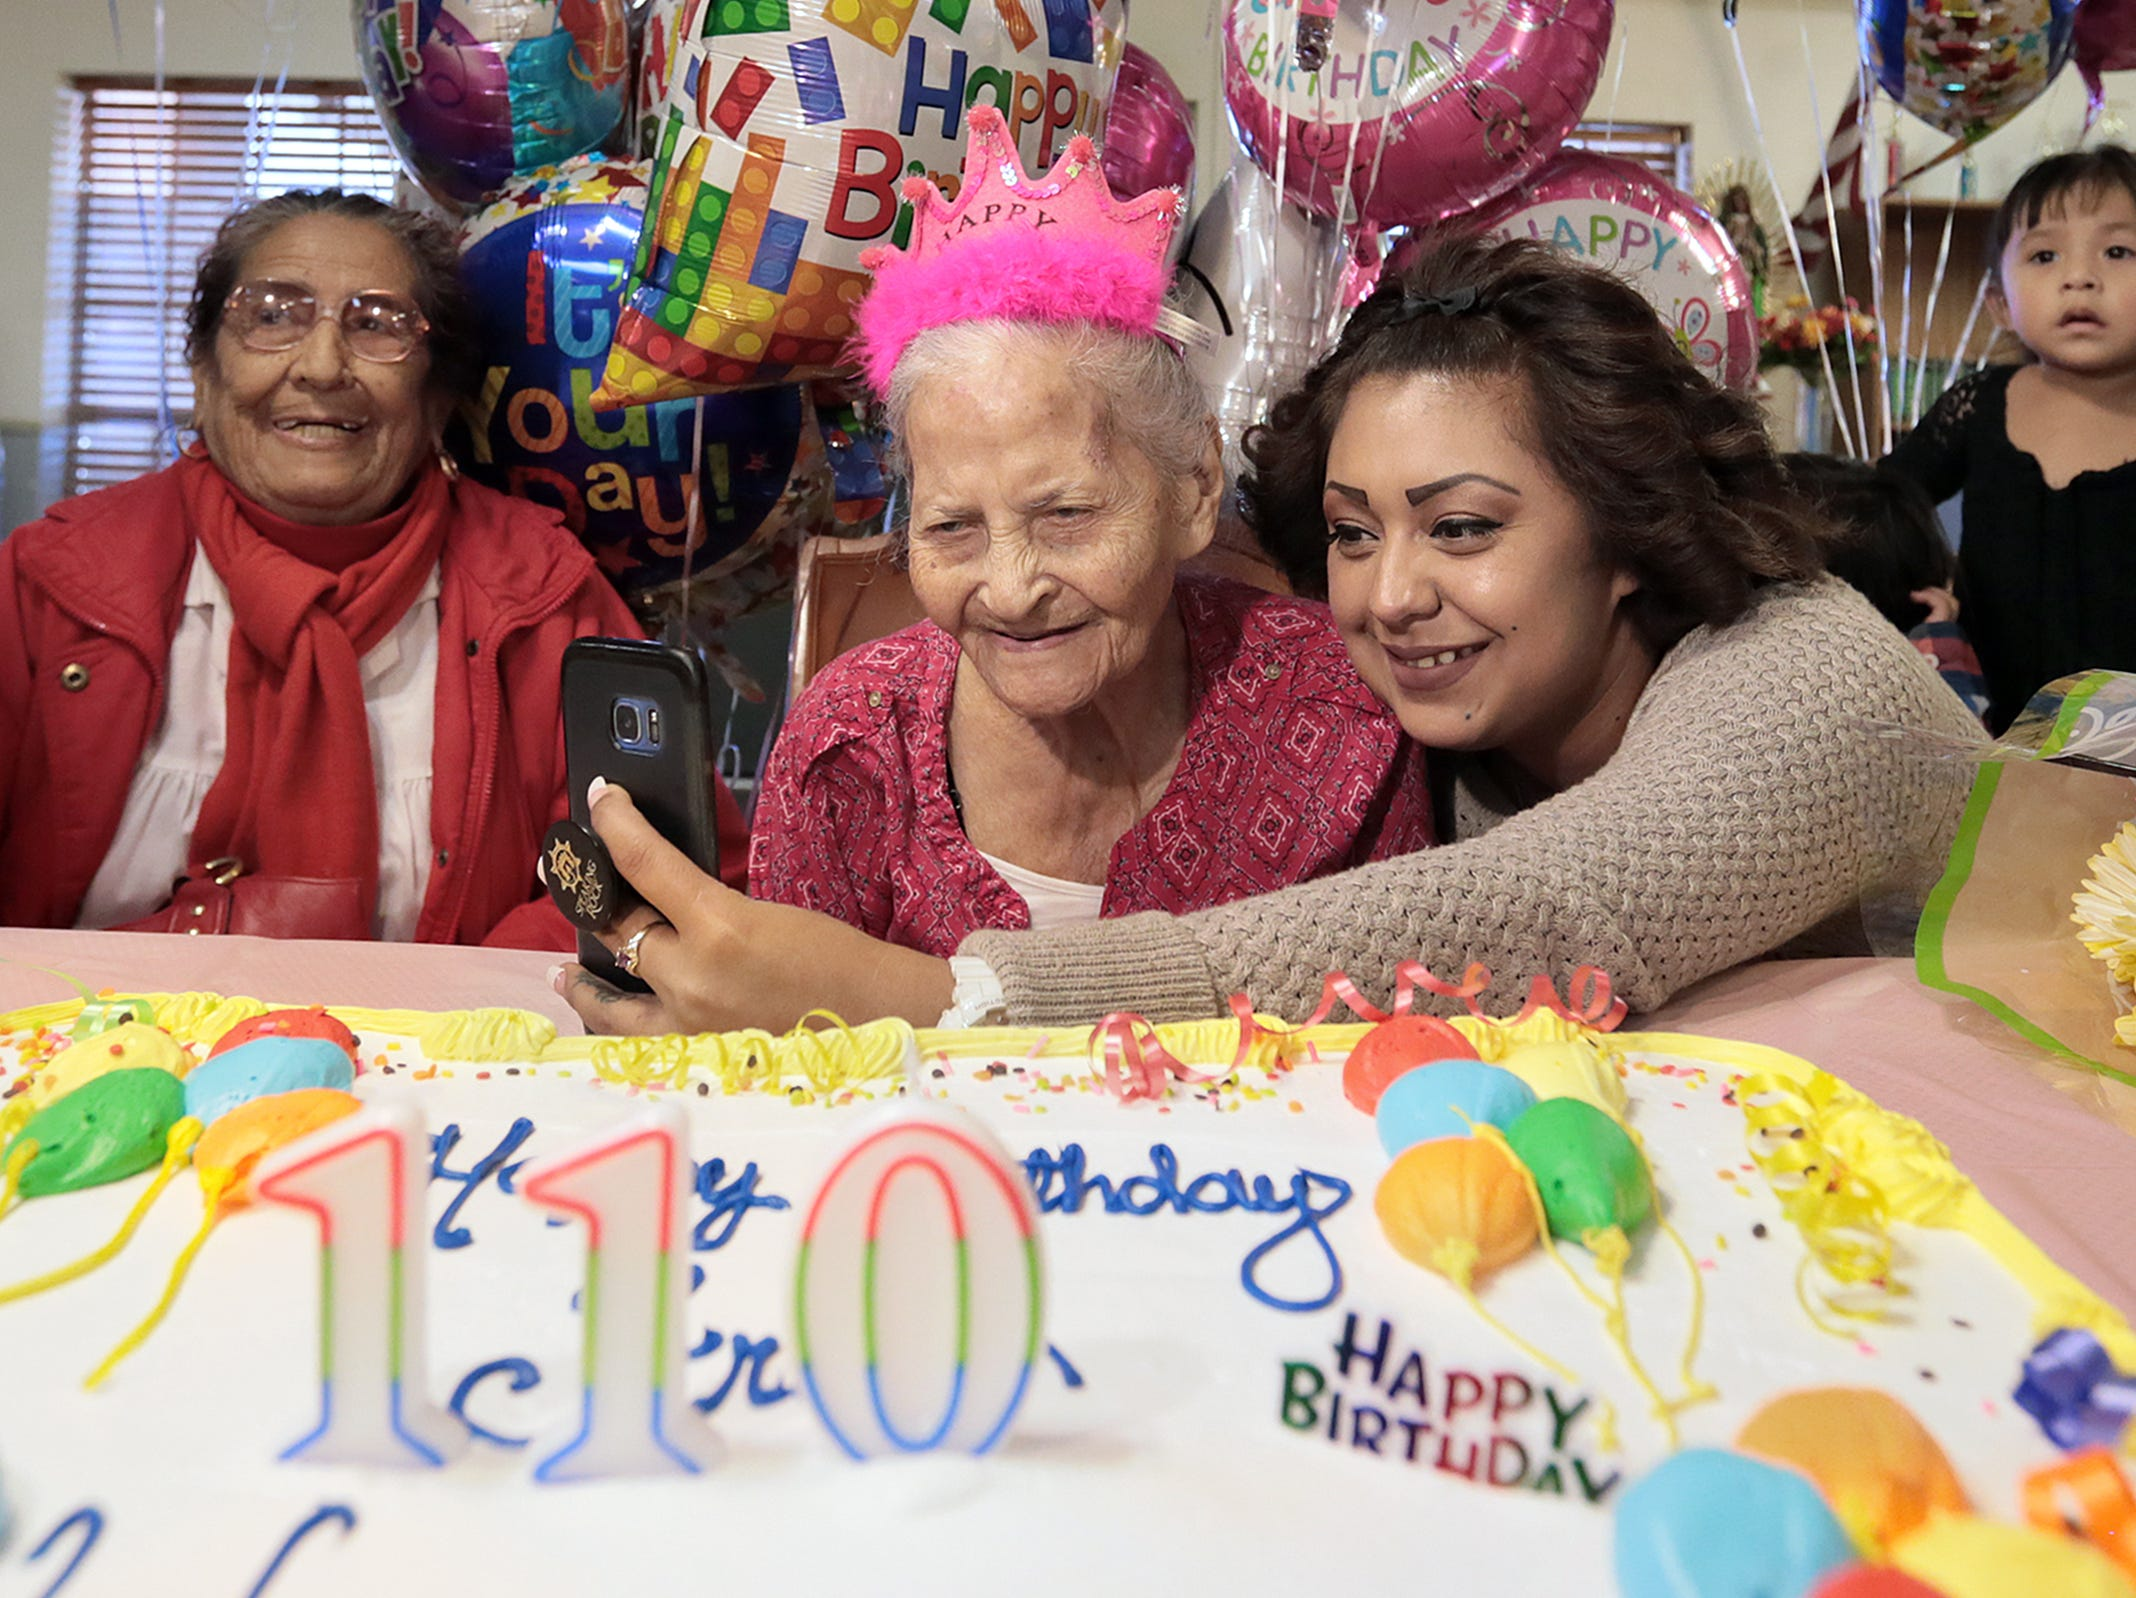 El Pasoan Maria de la Luz Angel Talamantes celebrates her 110th birthday Friday at Oasis Nursing and Rehabilitation Center. The Mexico native was a florist in Mexico before moving to El Paso. She was joined by family and the residents at Oasis.